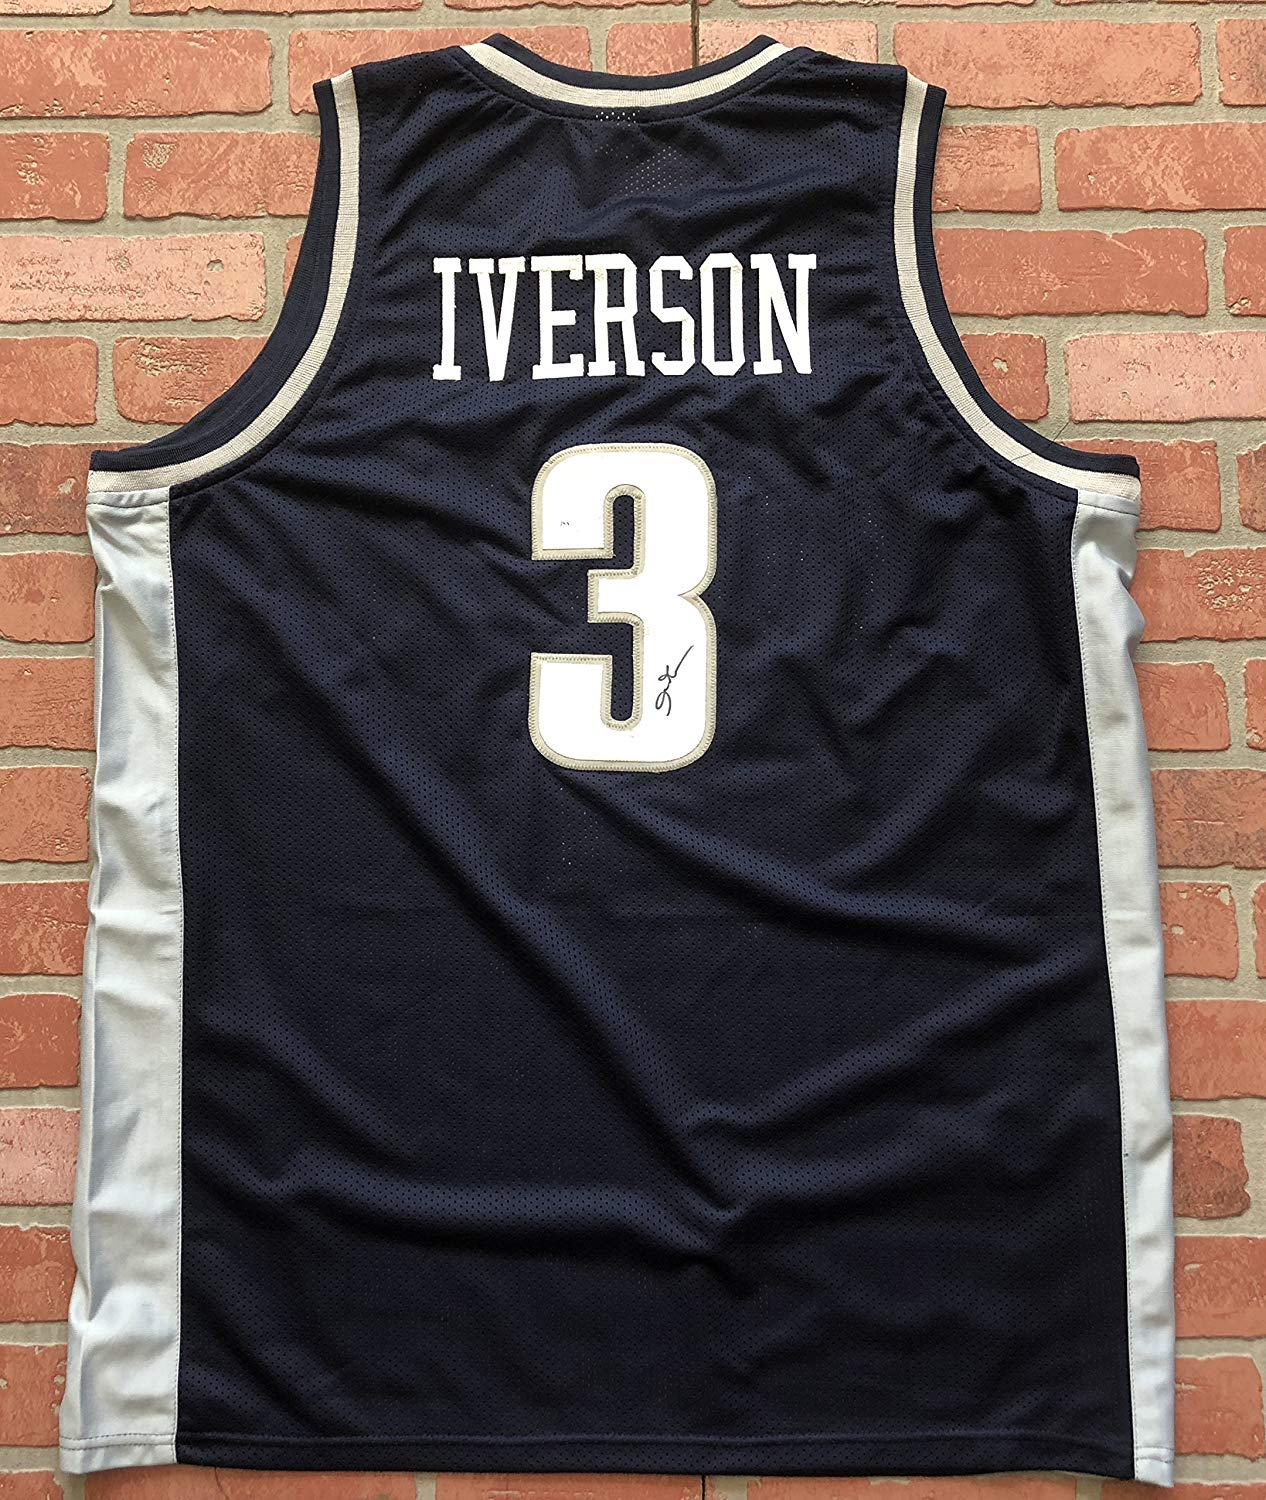 e0c7bb3ef4a Allen Iverson autographed signed jersey NCAA Georgetown Hoyas JSA w/COA